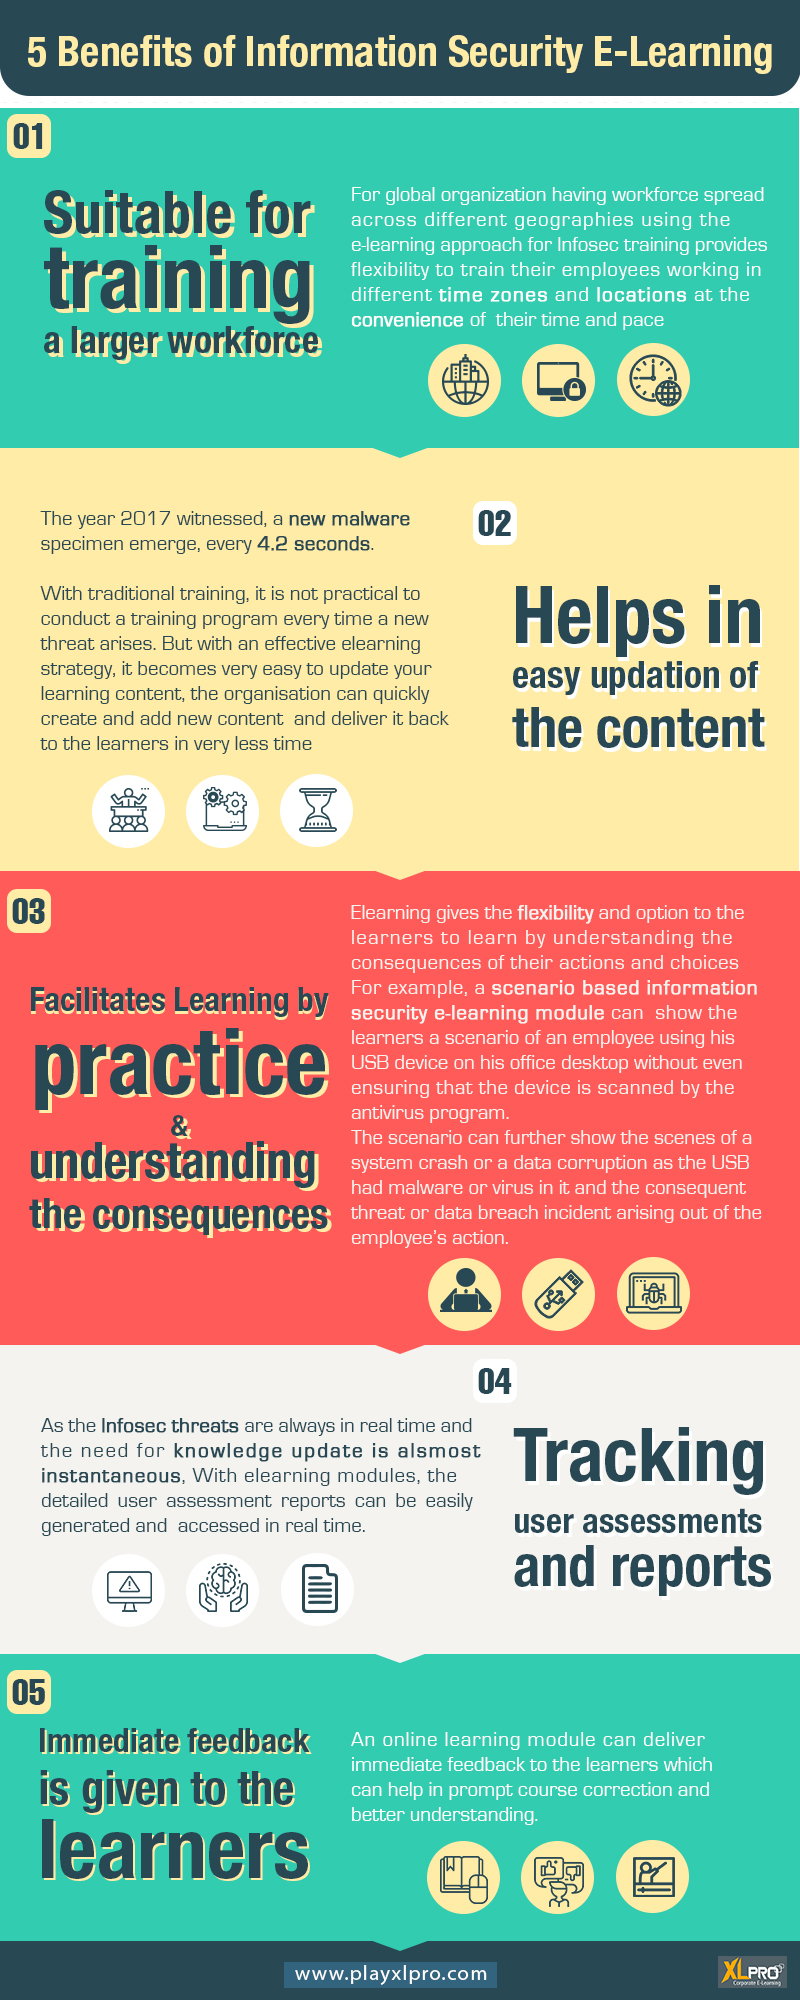 An infographic containing five section showing benefits of infosec e-learning